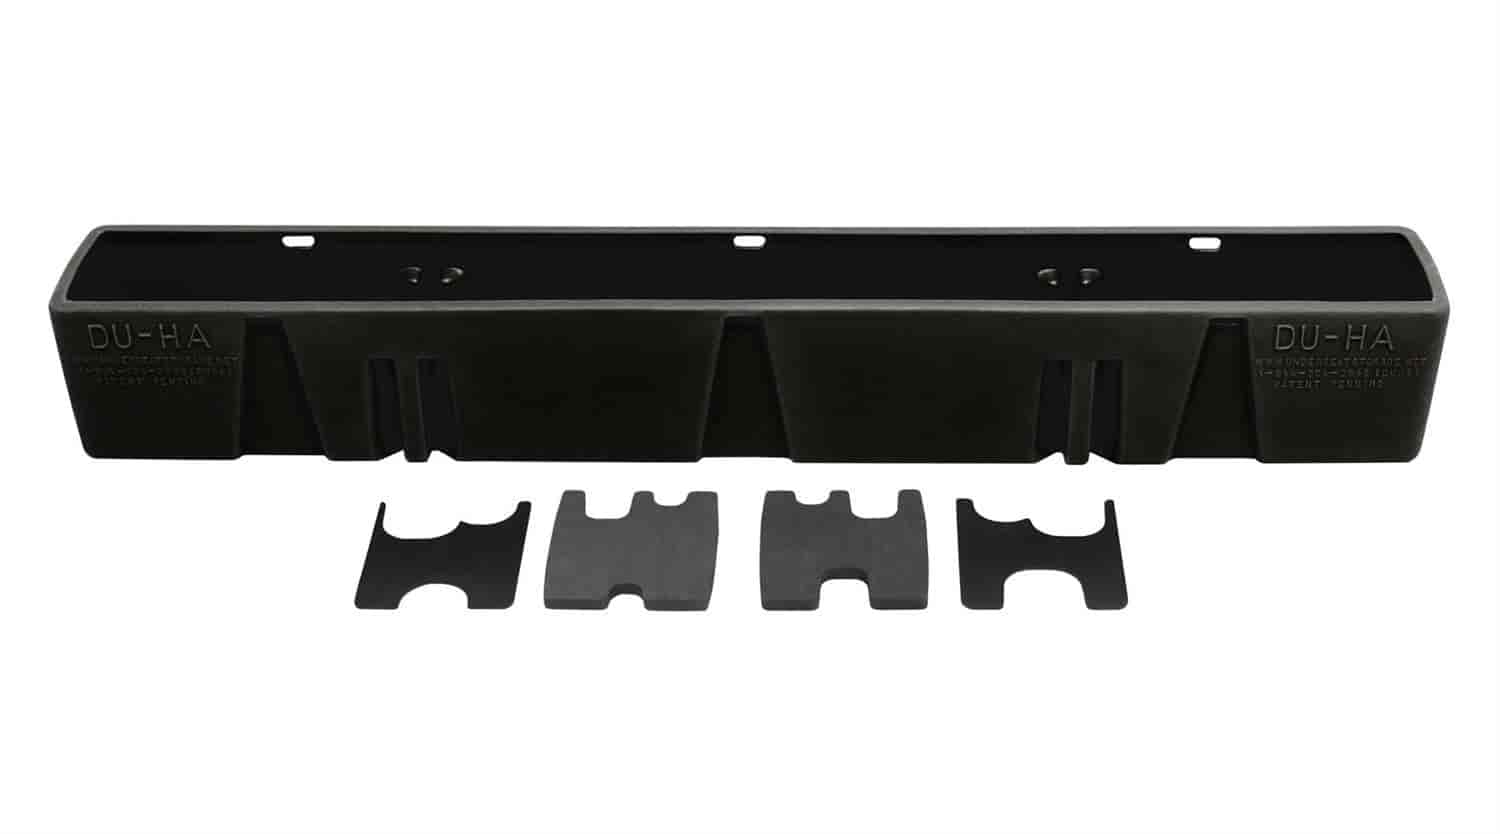 DU-HA 10013 - DU-HA Behind-the-Seat Storage Units for Trucks